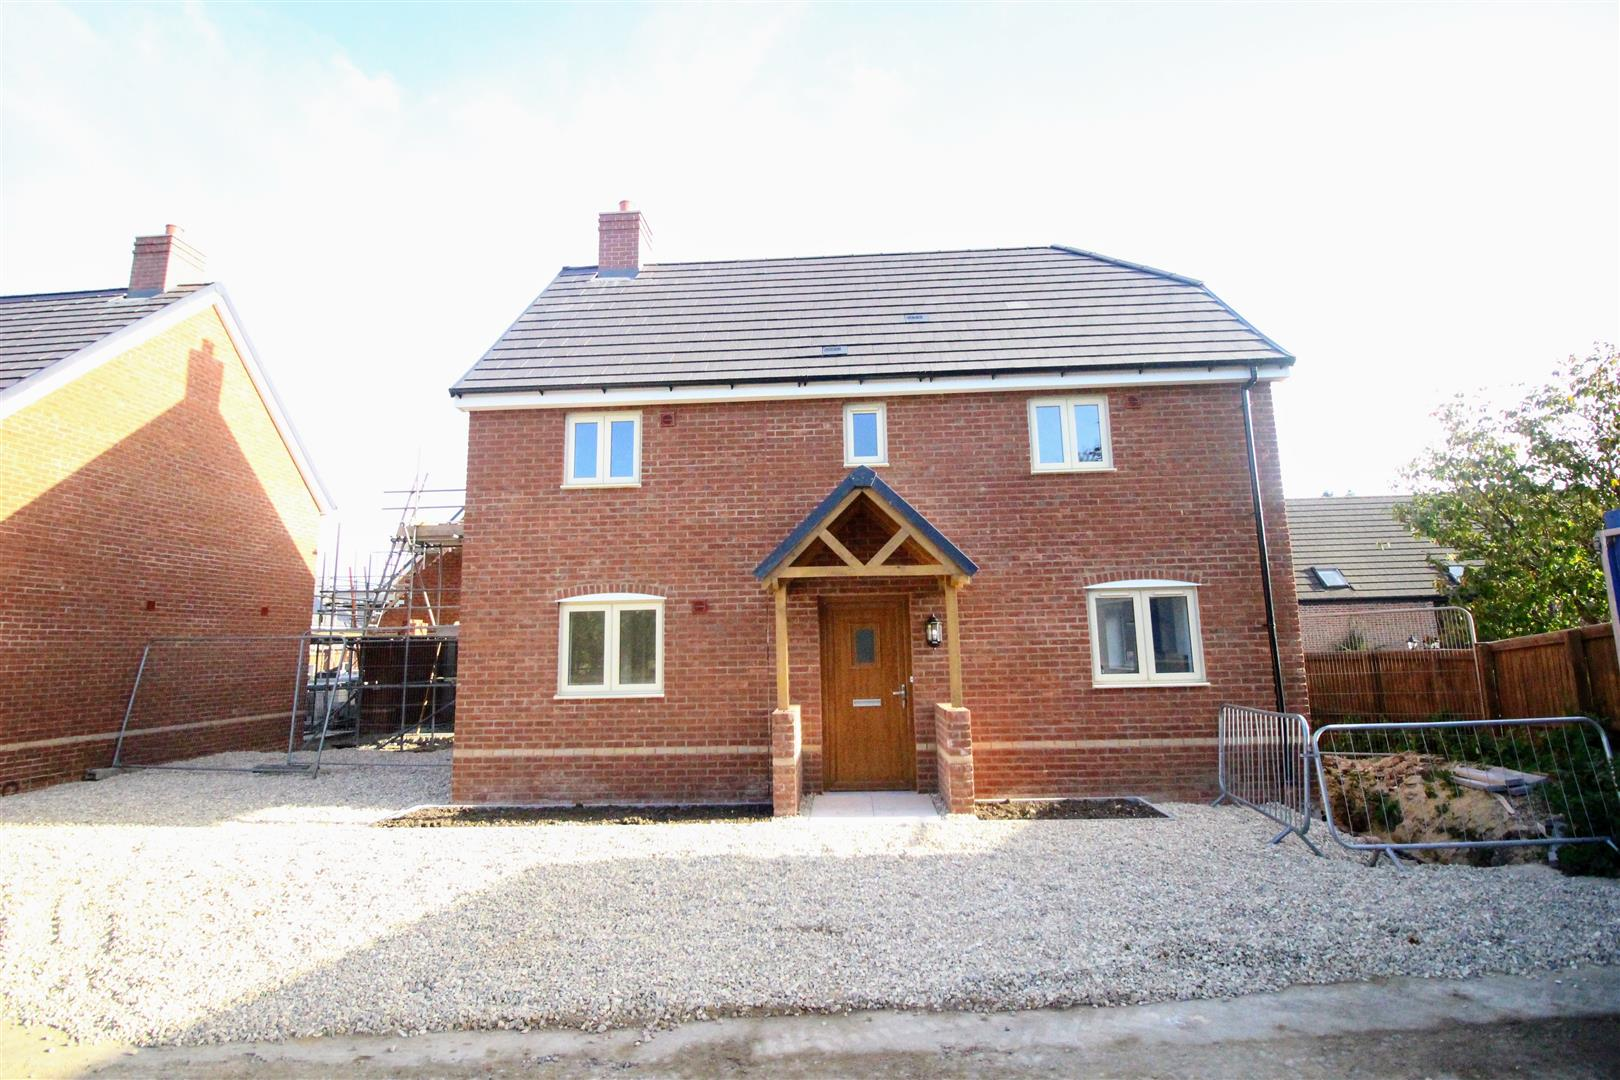 3 Bedrooms Detached House for sale in Kingsdown Road, Upper Stratton, Swindon